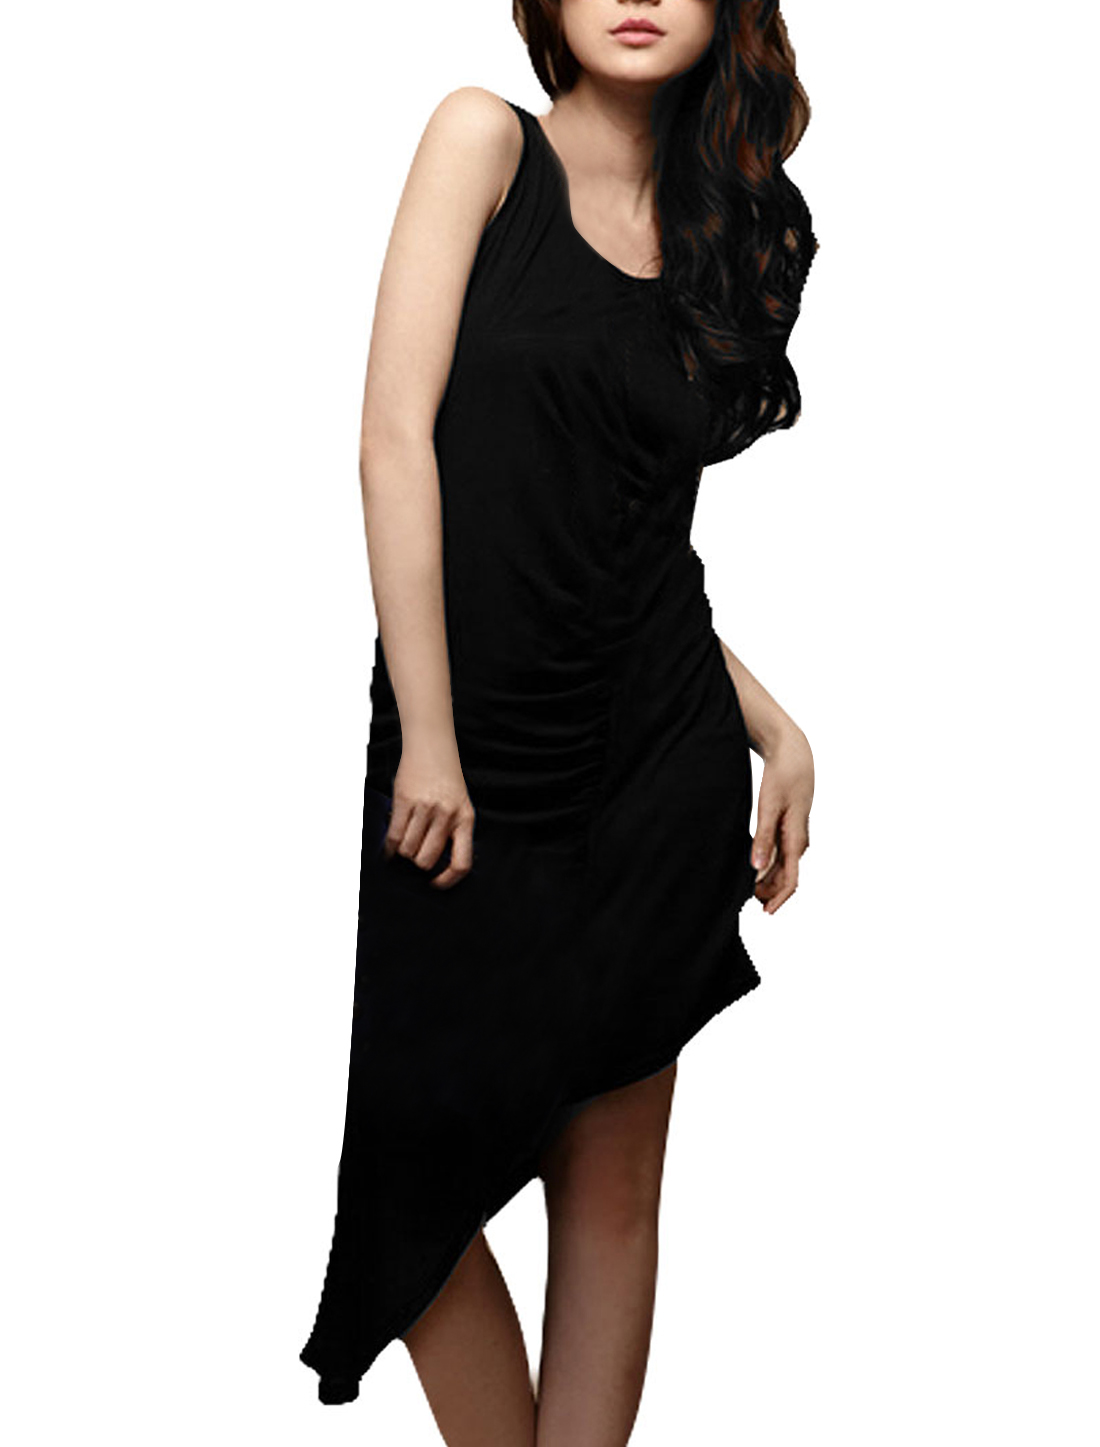 Woman Solid Black Low Round Neck Leisure Slanting Edge Dress XS